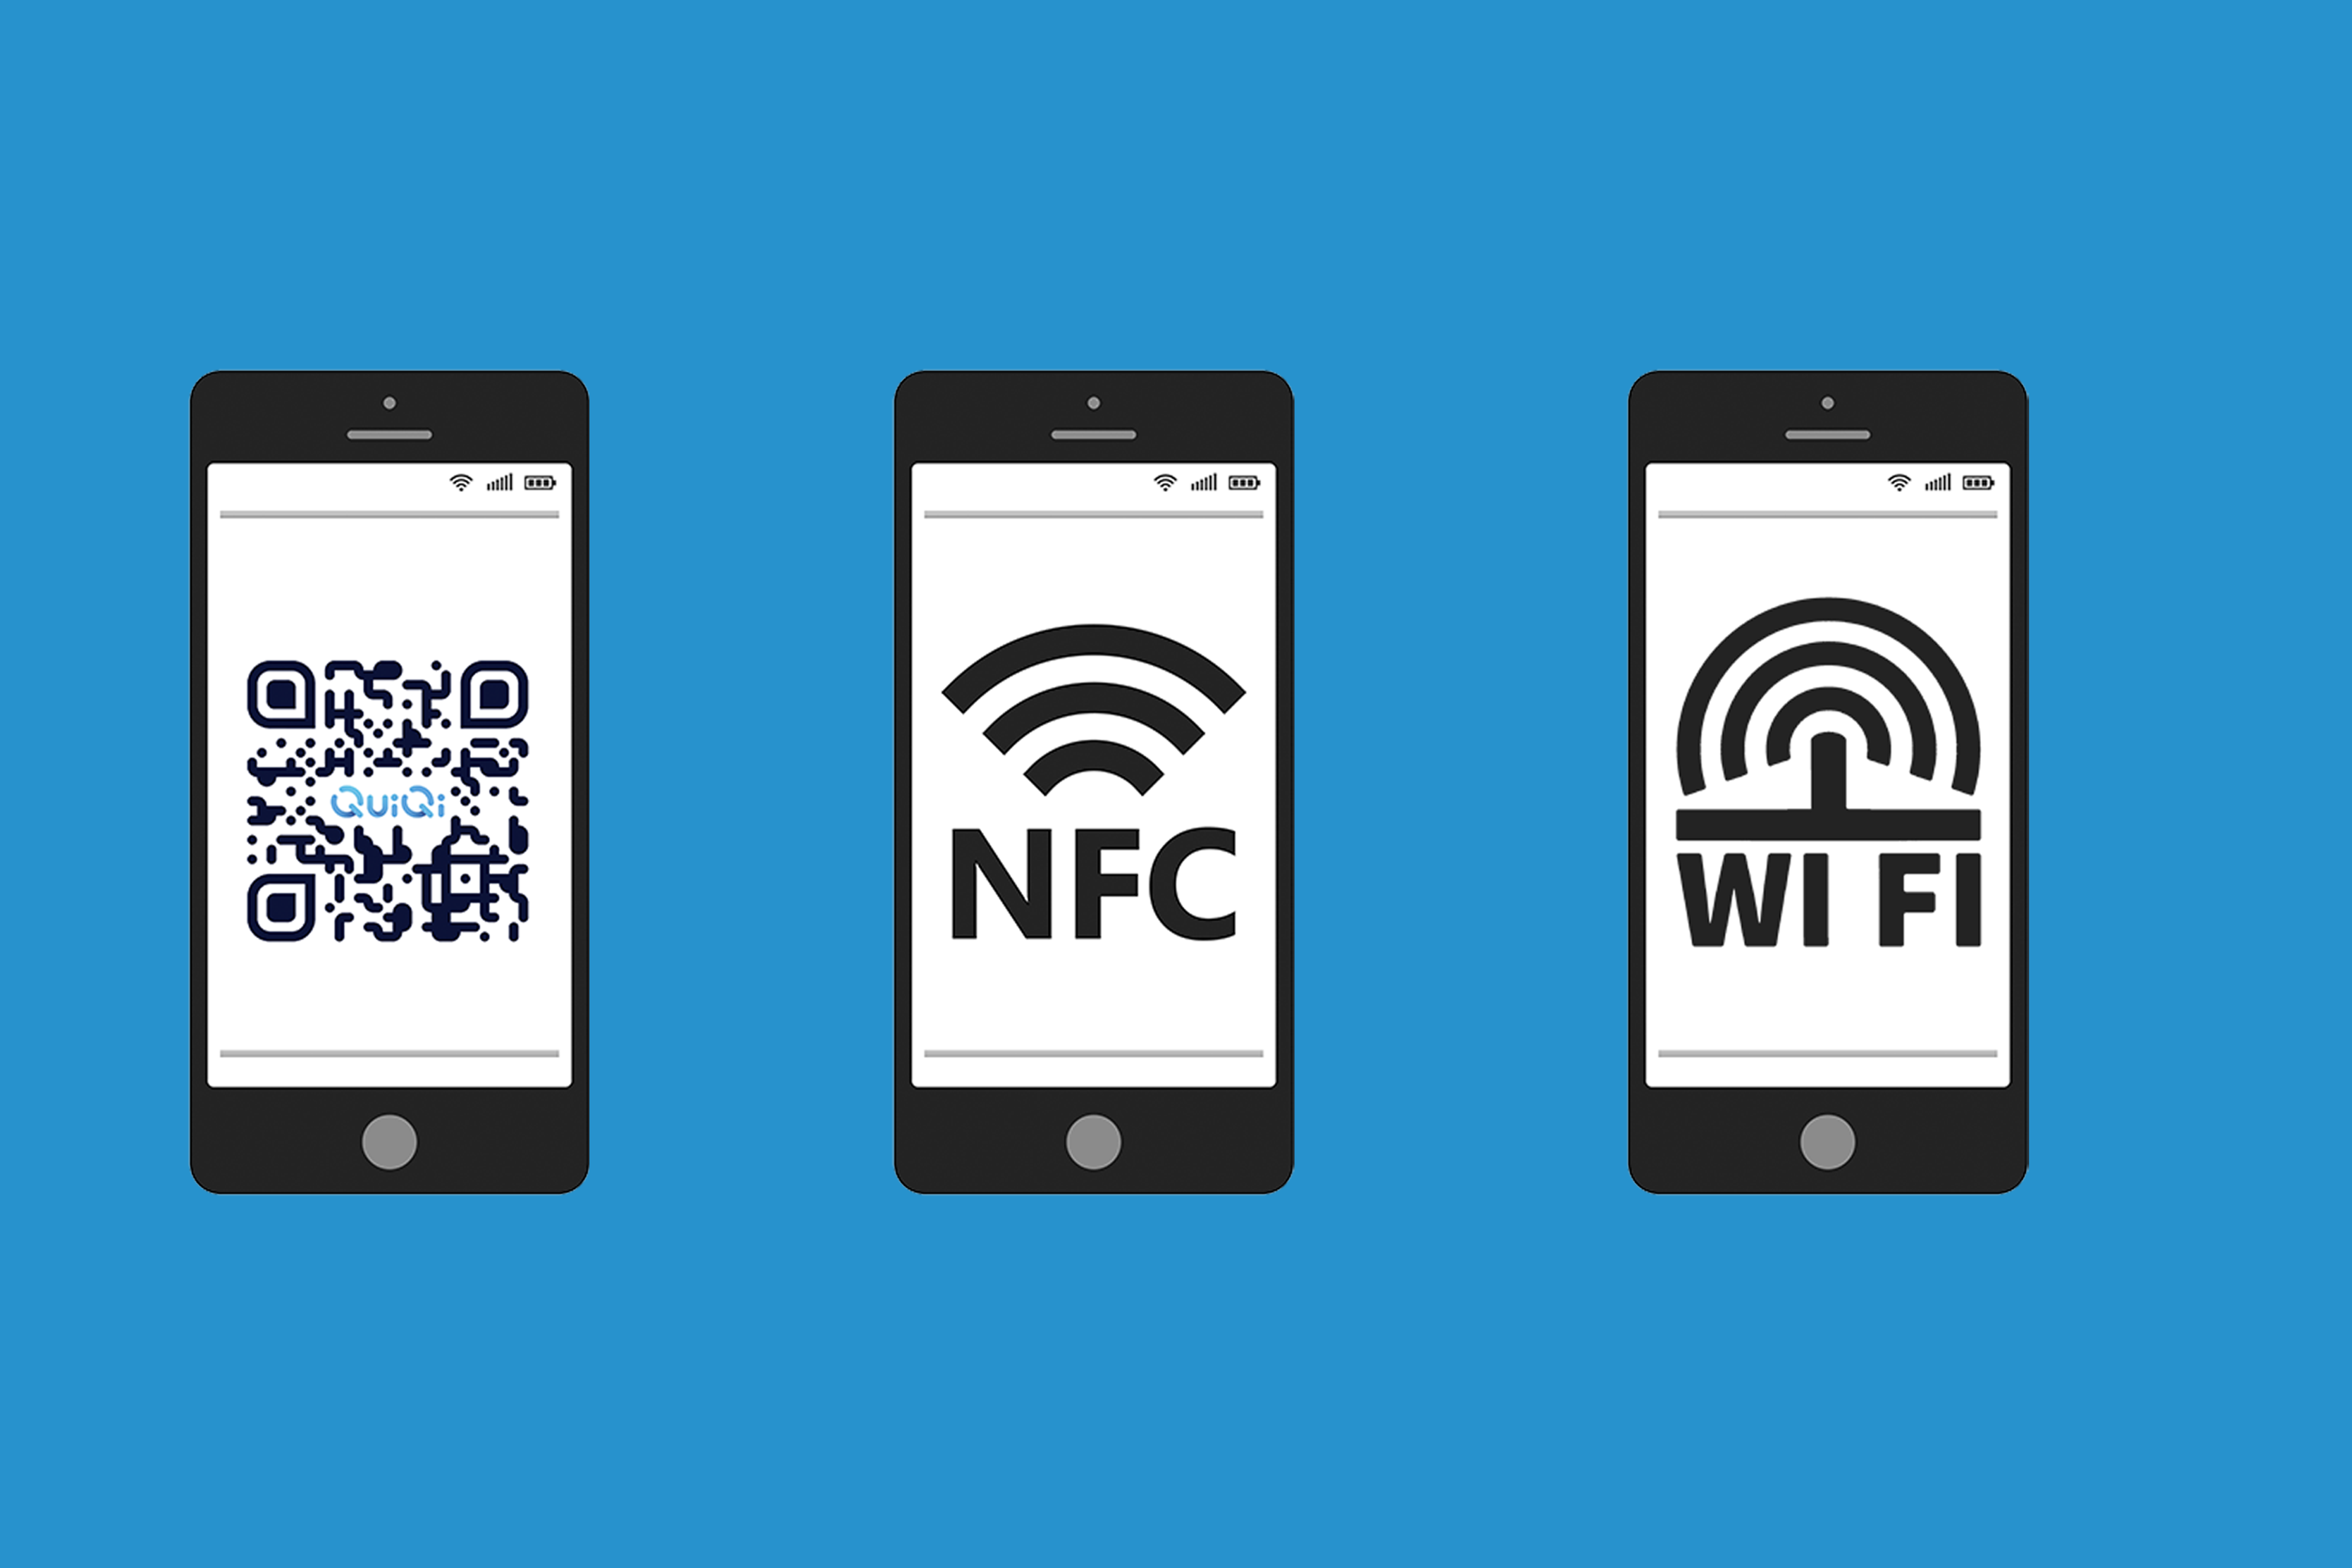 3 mobile phones showing QR code, NFC, and WIFI symbols